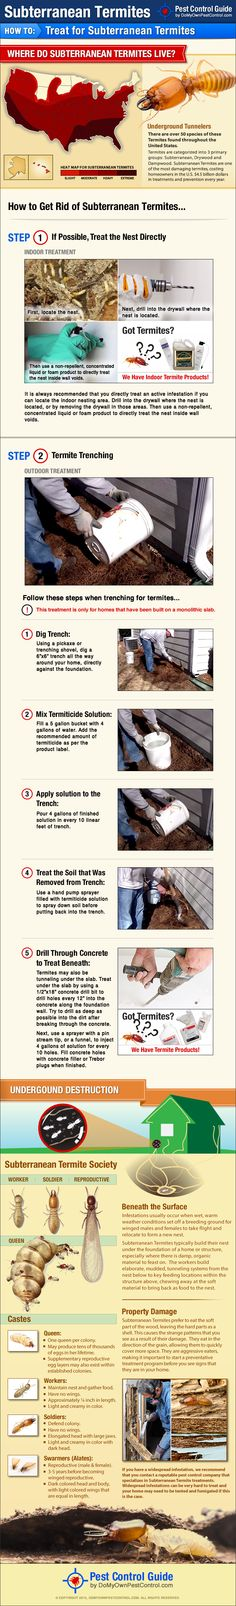 Learn how to get rid of subterranean termites yourself with this DIY termite treatment guide.